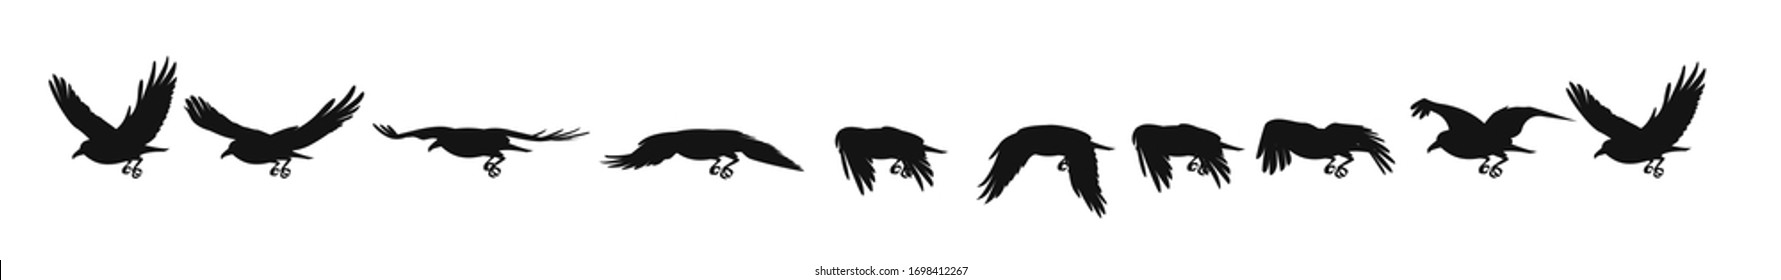 Crow or rook. Black flying raven, sequences for ready 2d animation.